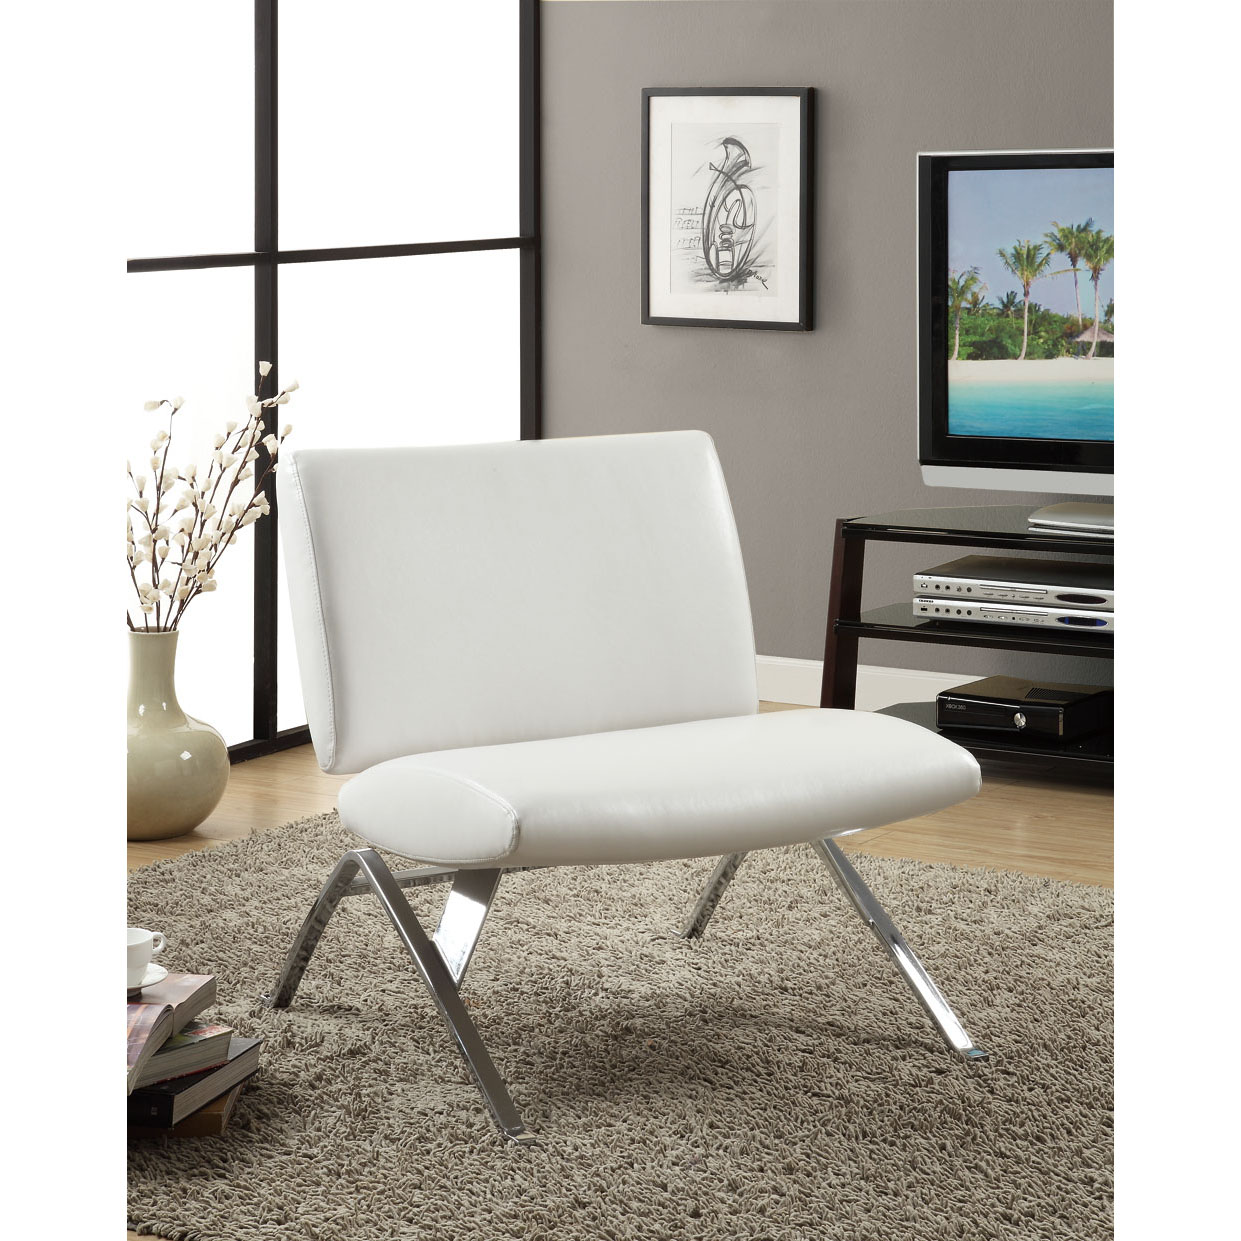 Designer Accent Chairs: White Leather-Look / Chrome Metal Modern Accent Chair